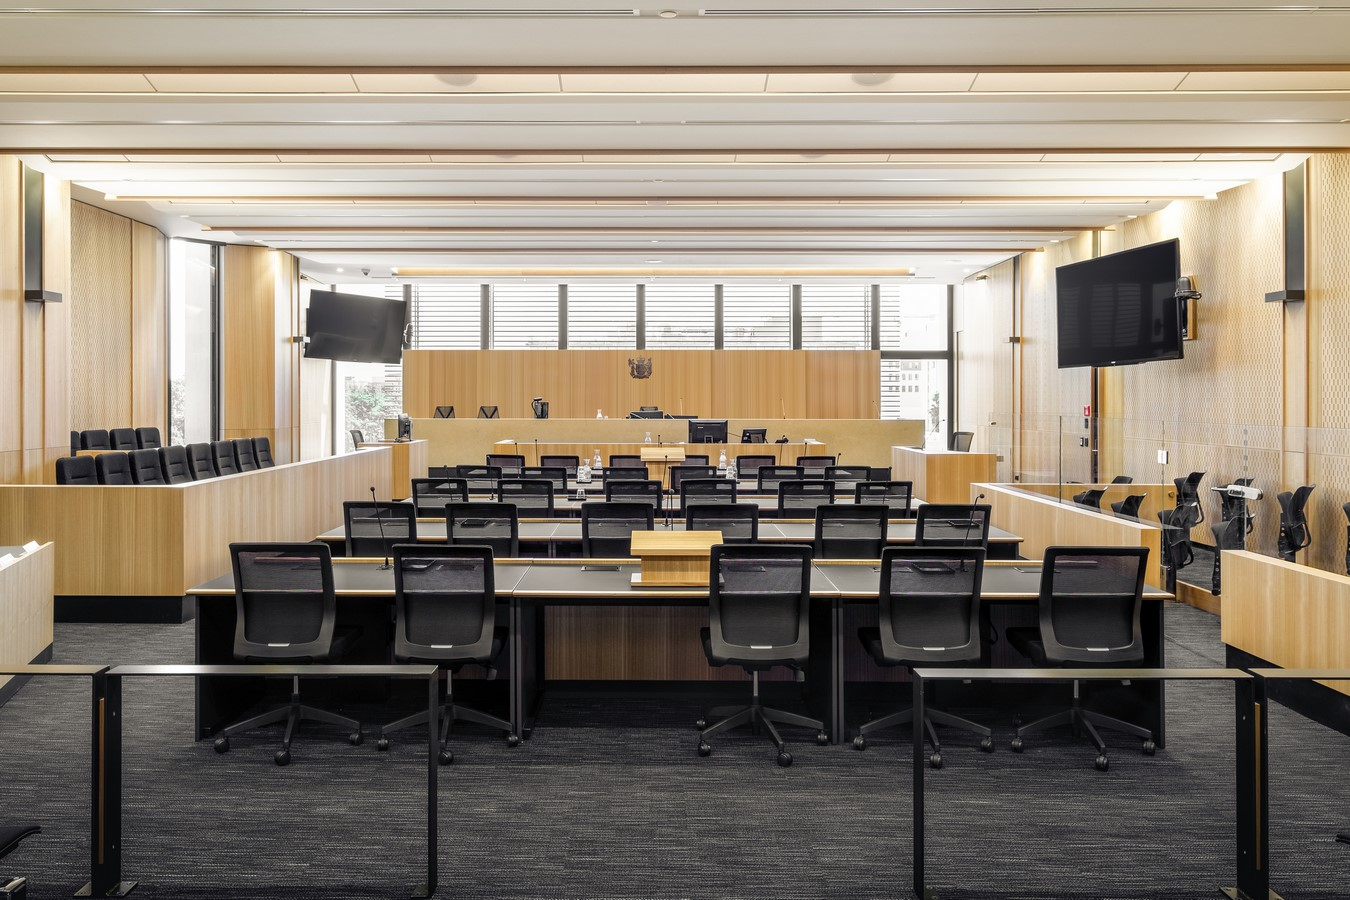 Christchurch Justice and Emergency Services Precinct by Cox Architecture - Sheet1